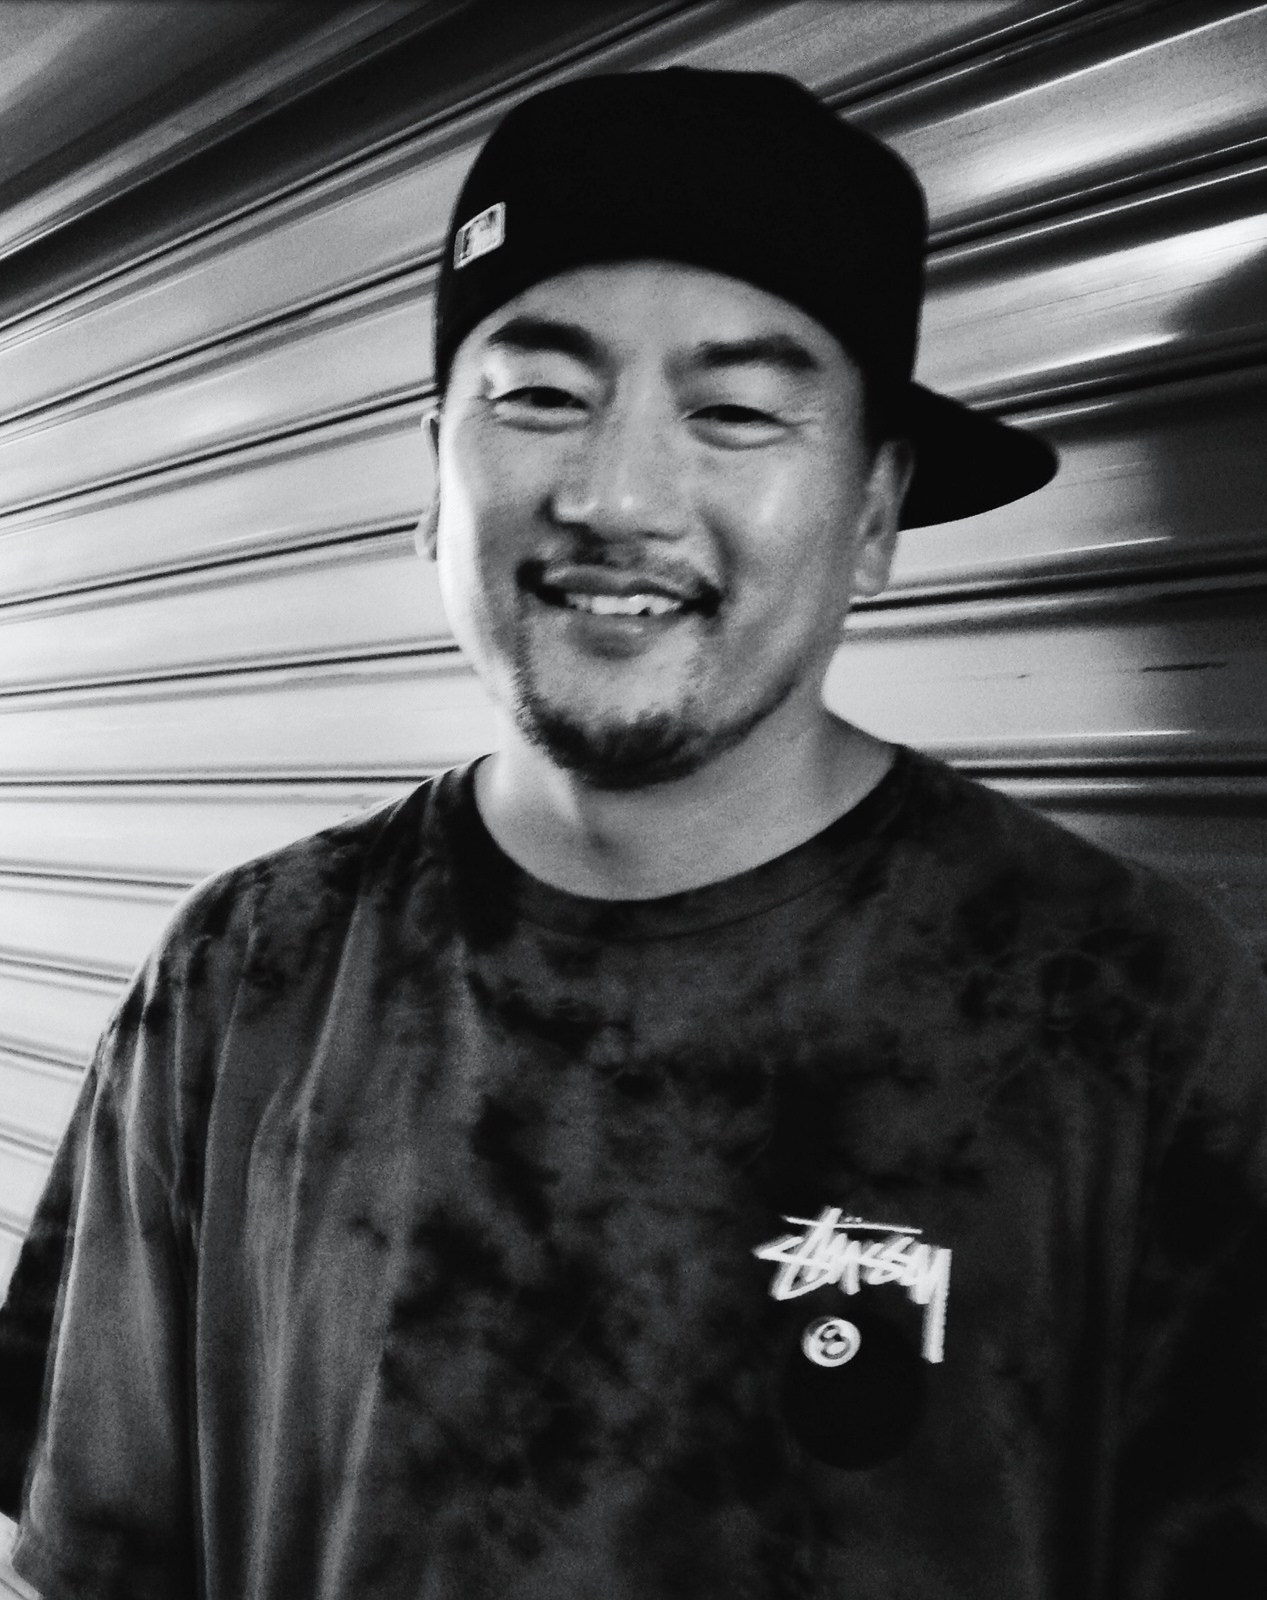 Chef Roy Choi was raised in Los Angeles, California. He attended the Culinary Institute of America in New York.